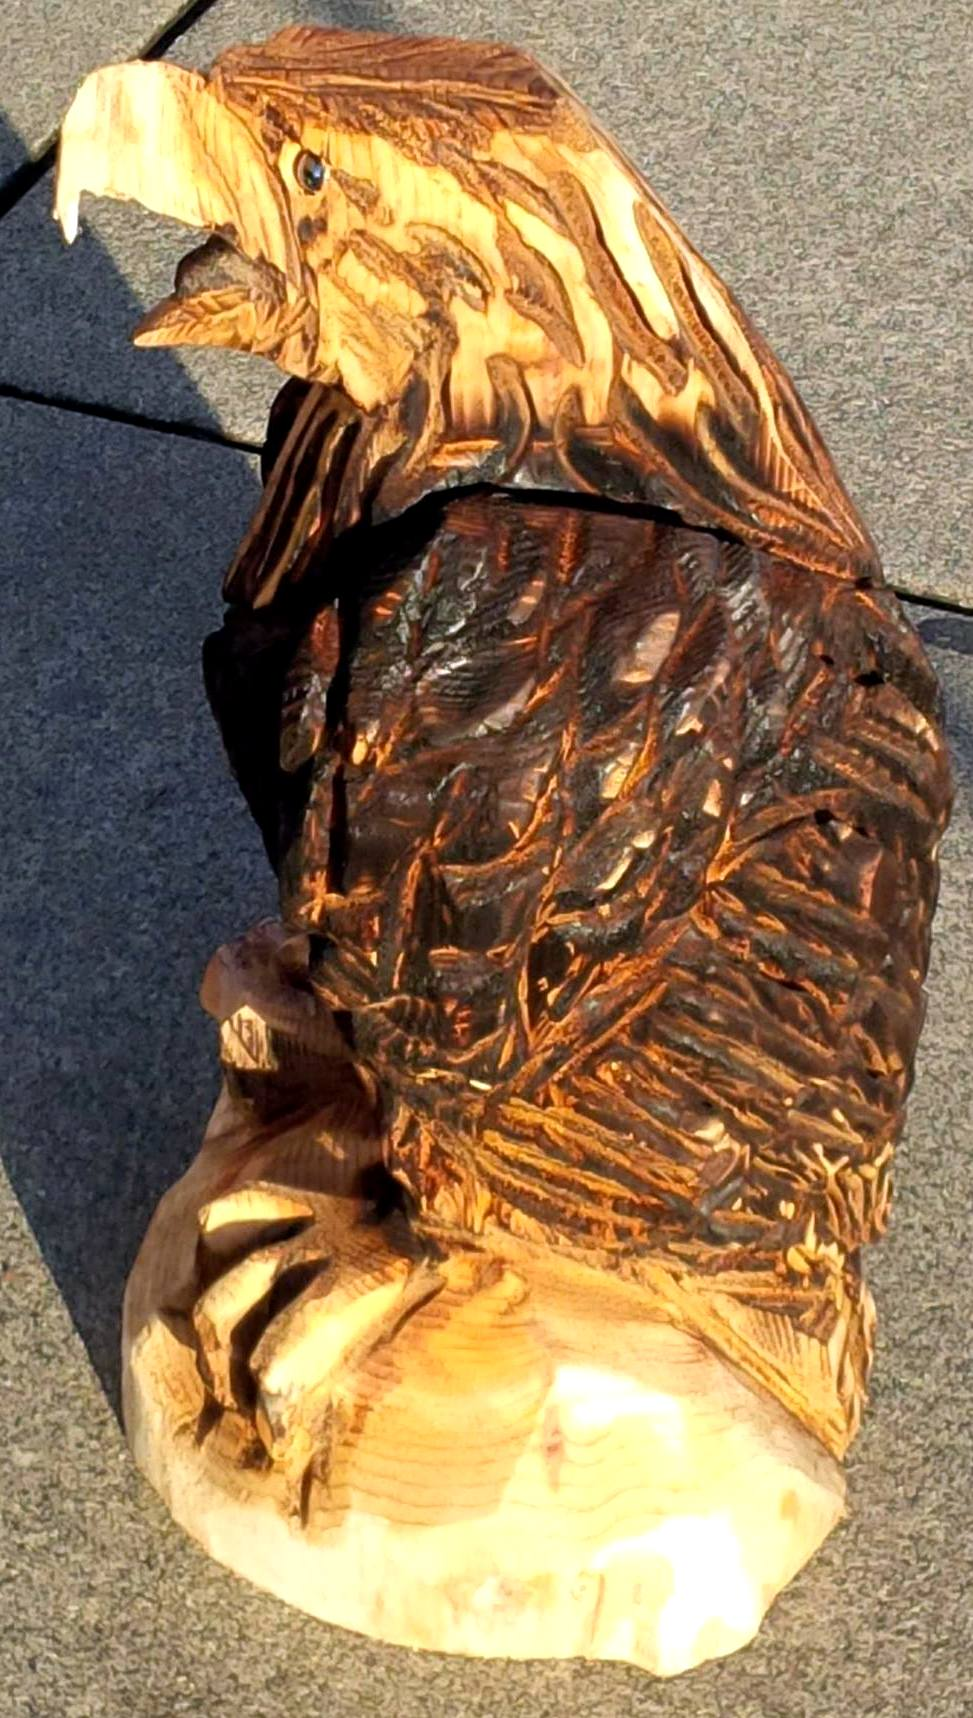 2013-11-20-Eagle-Chainsaw-Carved-Eagle-1.jpg